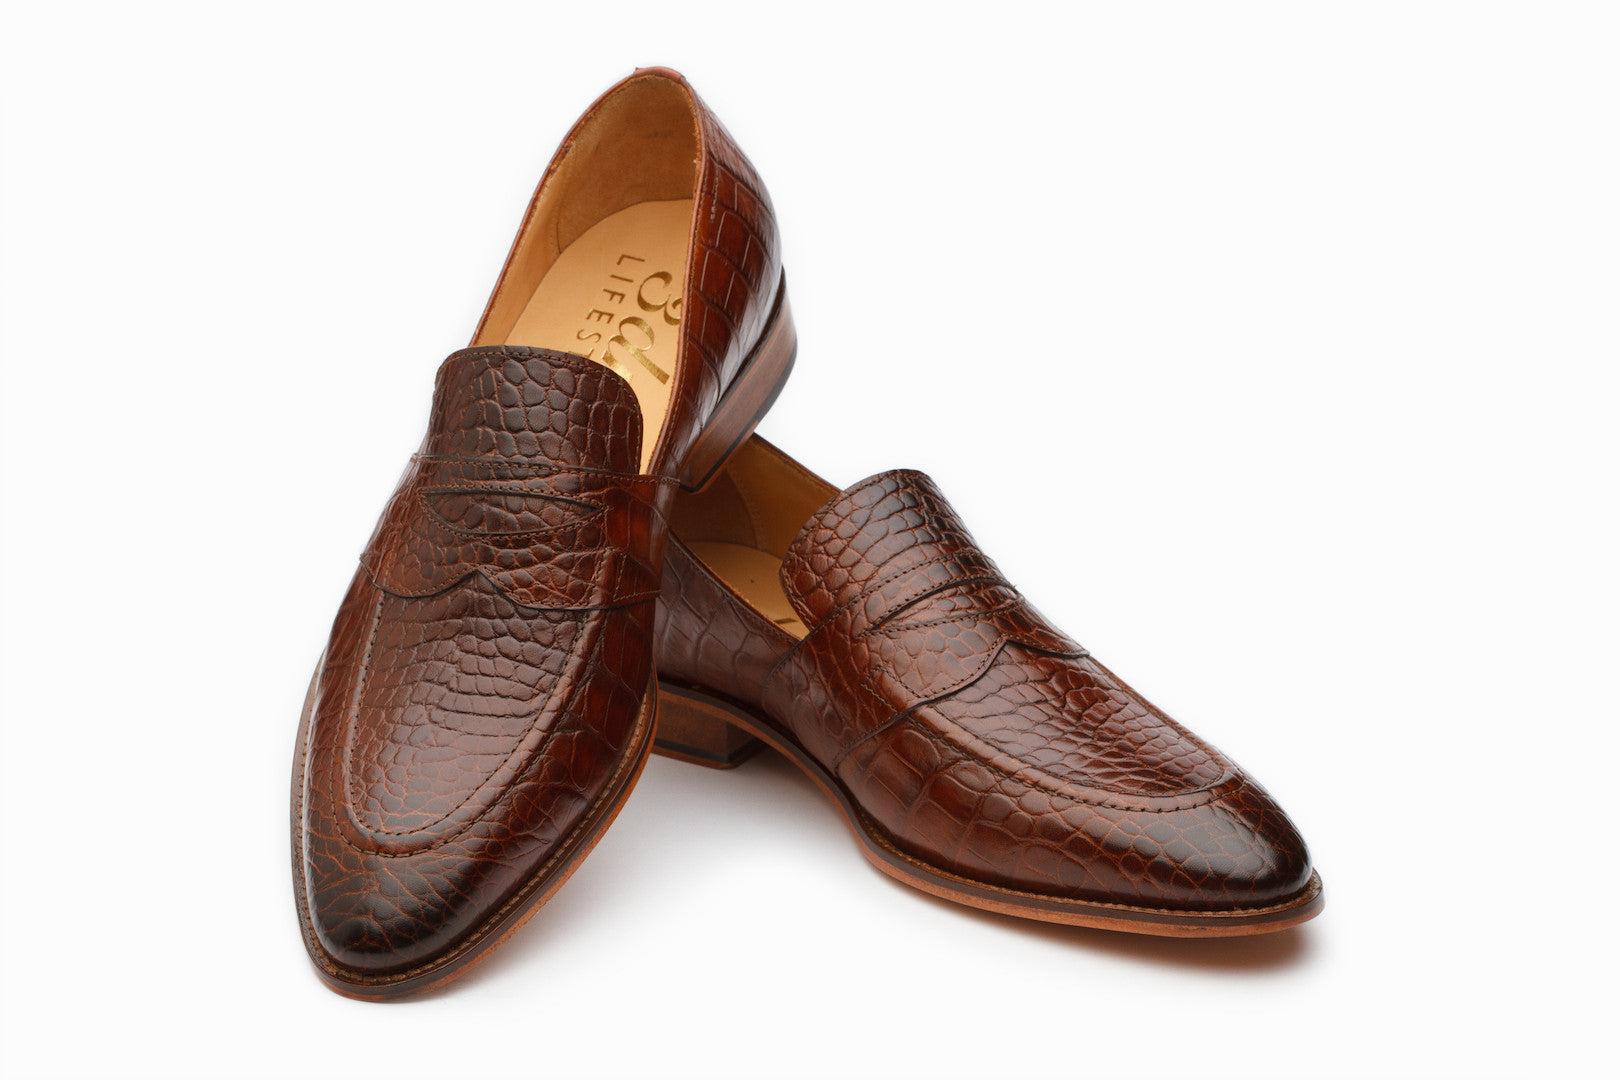 Loafers - Saddle Strap Loafer - Crocodile Brown ( UK 6,7,8 & 11 Only)